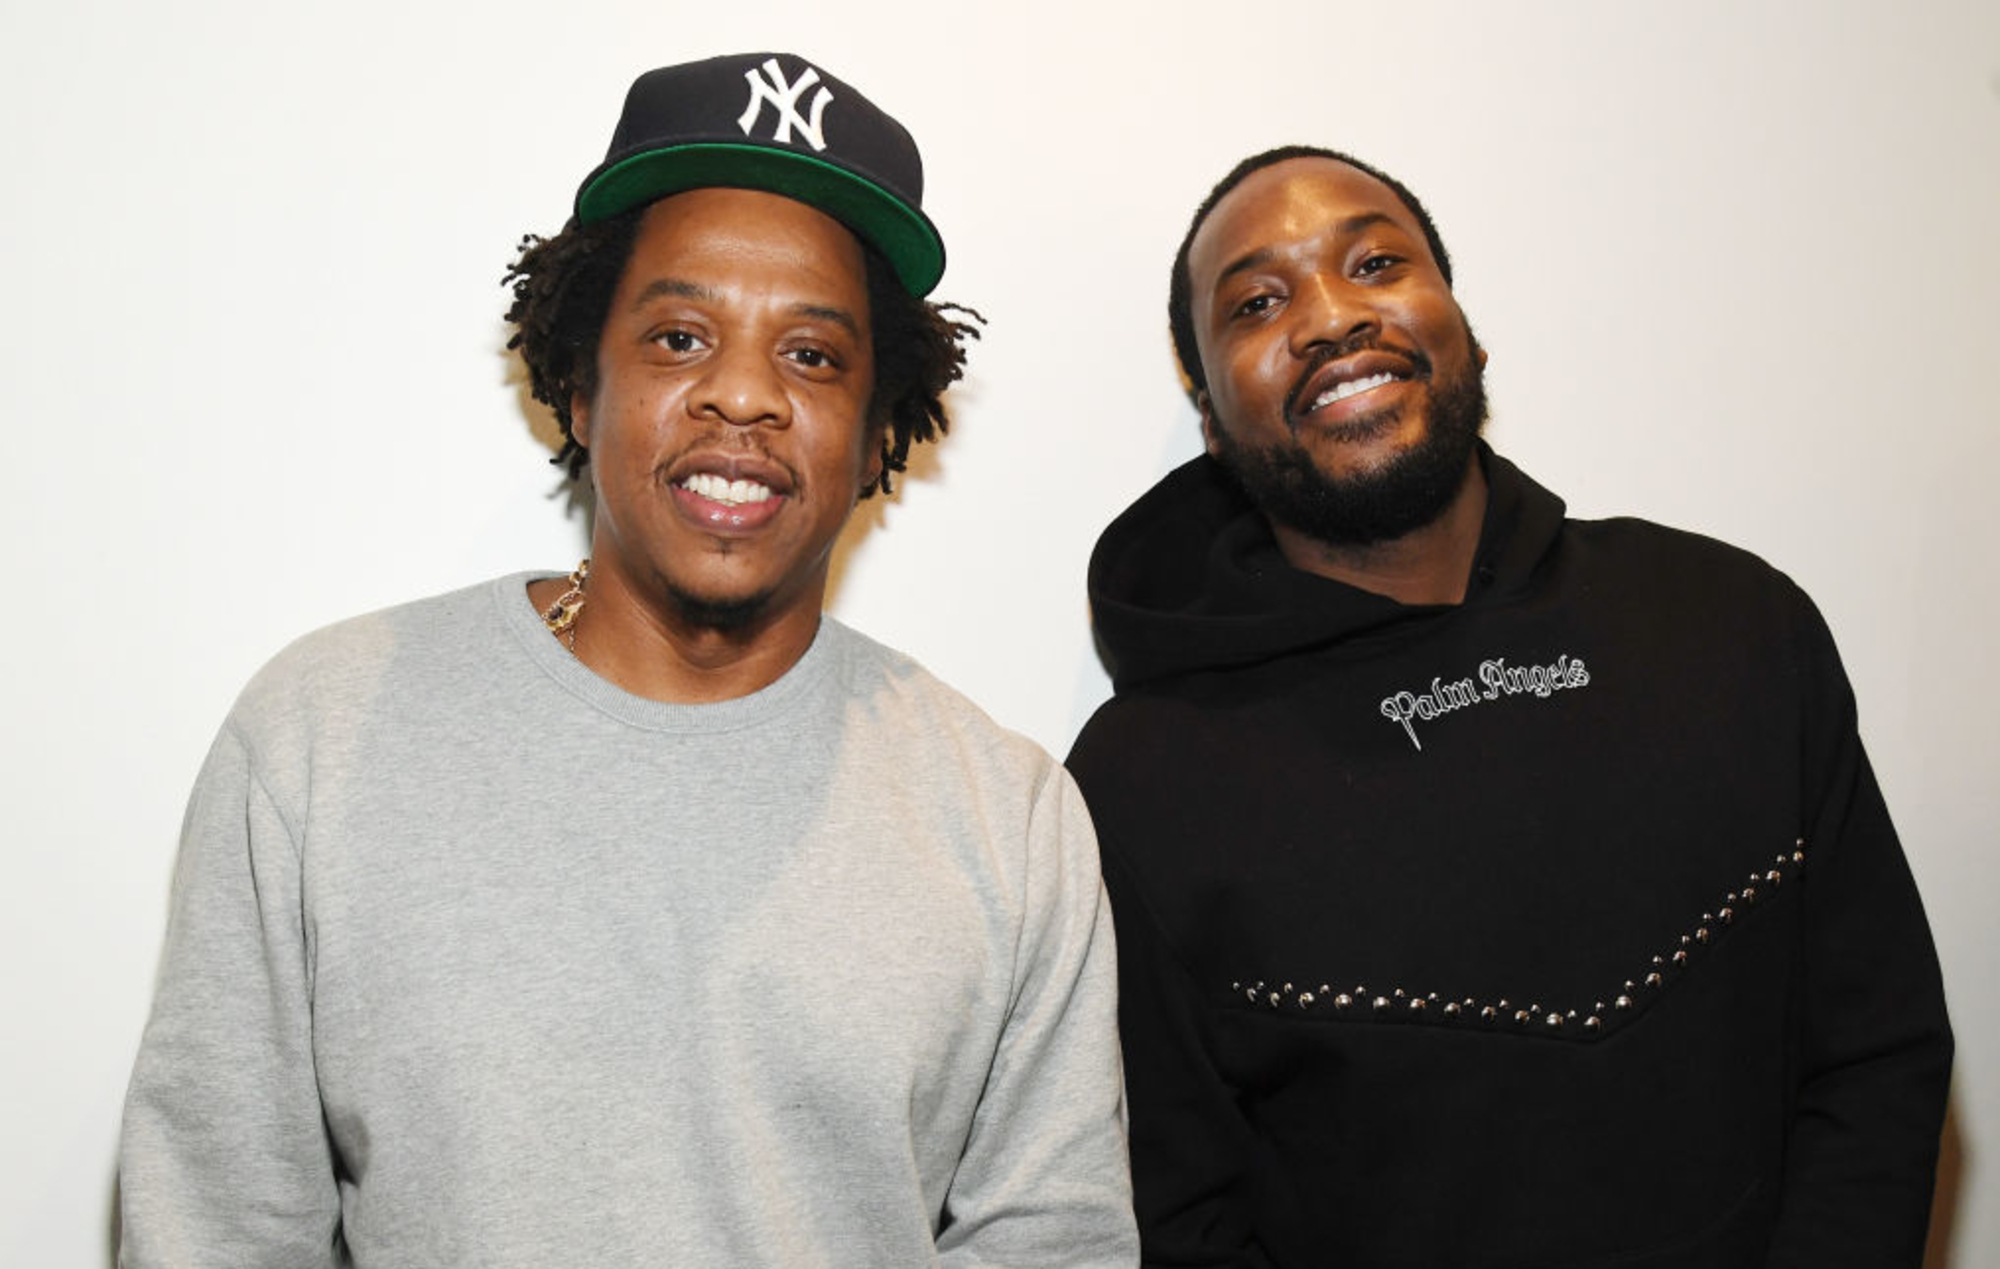 Meek Mill and Jay-Z's REFORM Alliance helps pass reform laws in Michigan